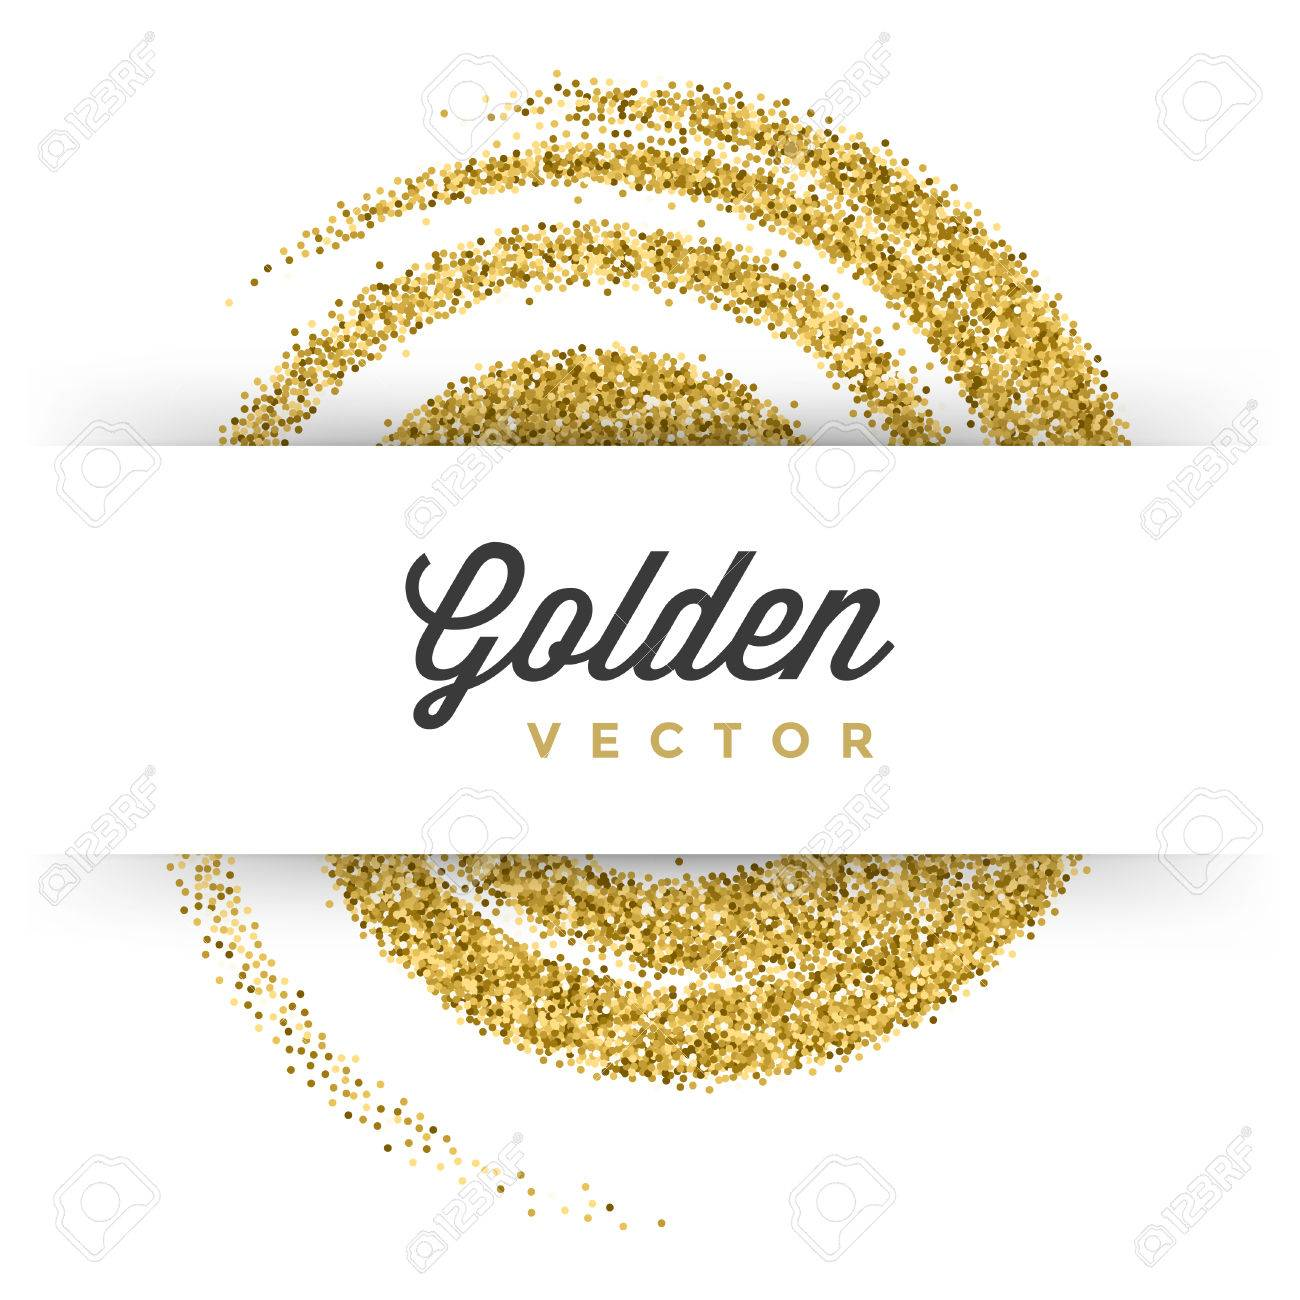 Gold glitter sparkles bright confetti white vector background gold glitter sparkles bright confetti white vector background good for greeting gold cards luxury stopboris Images